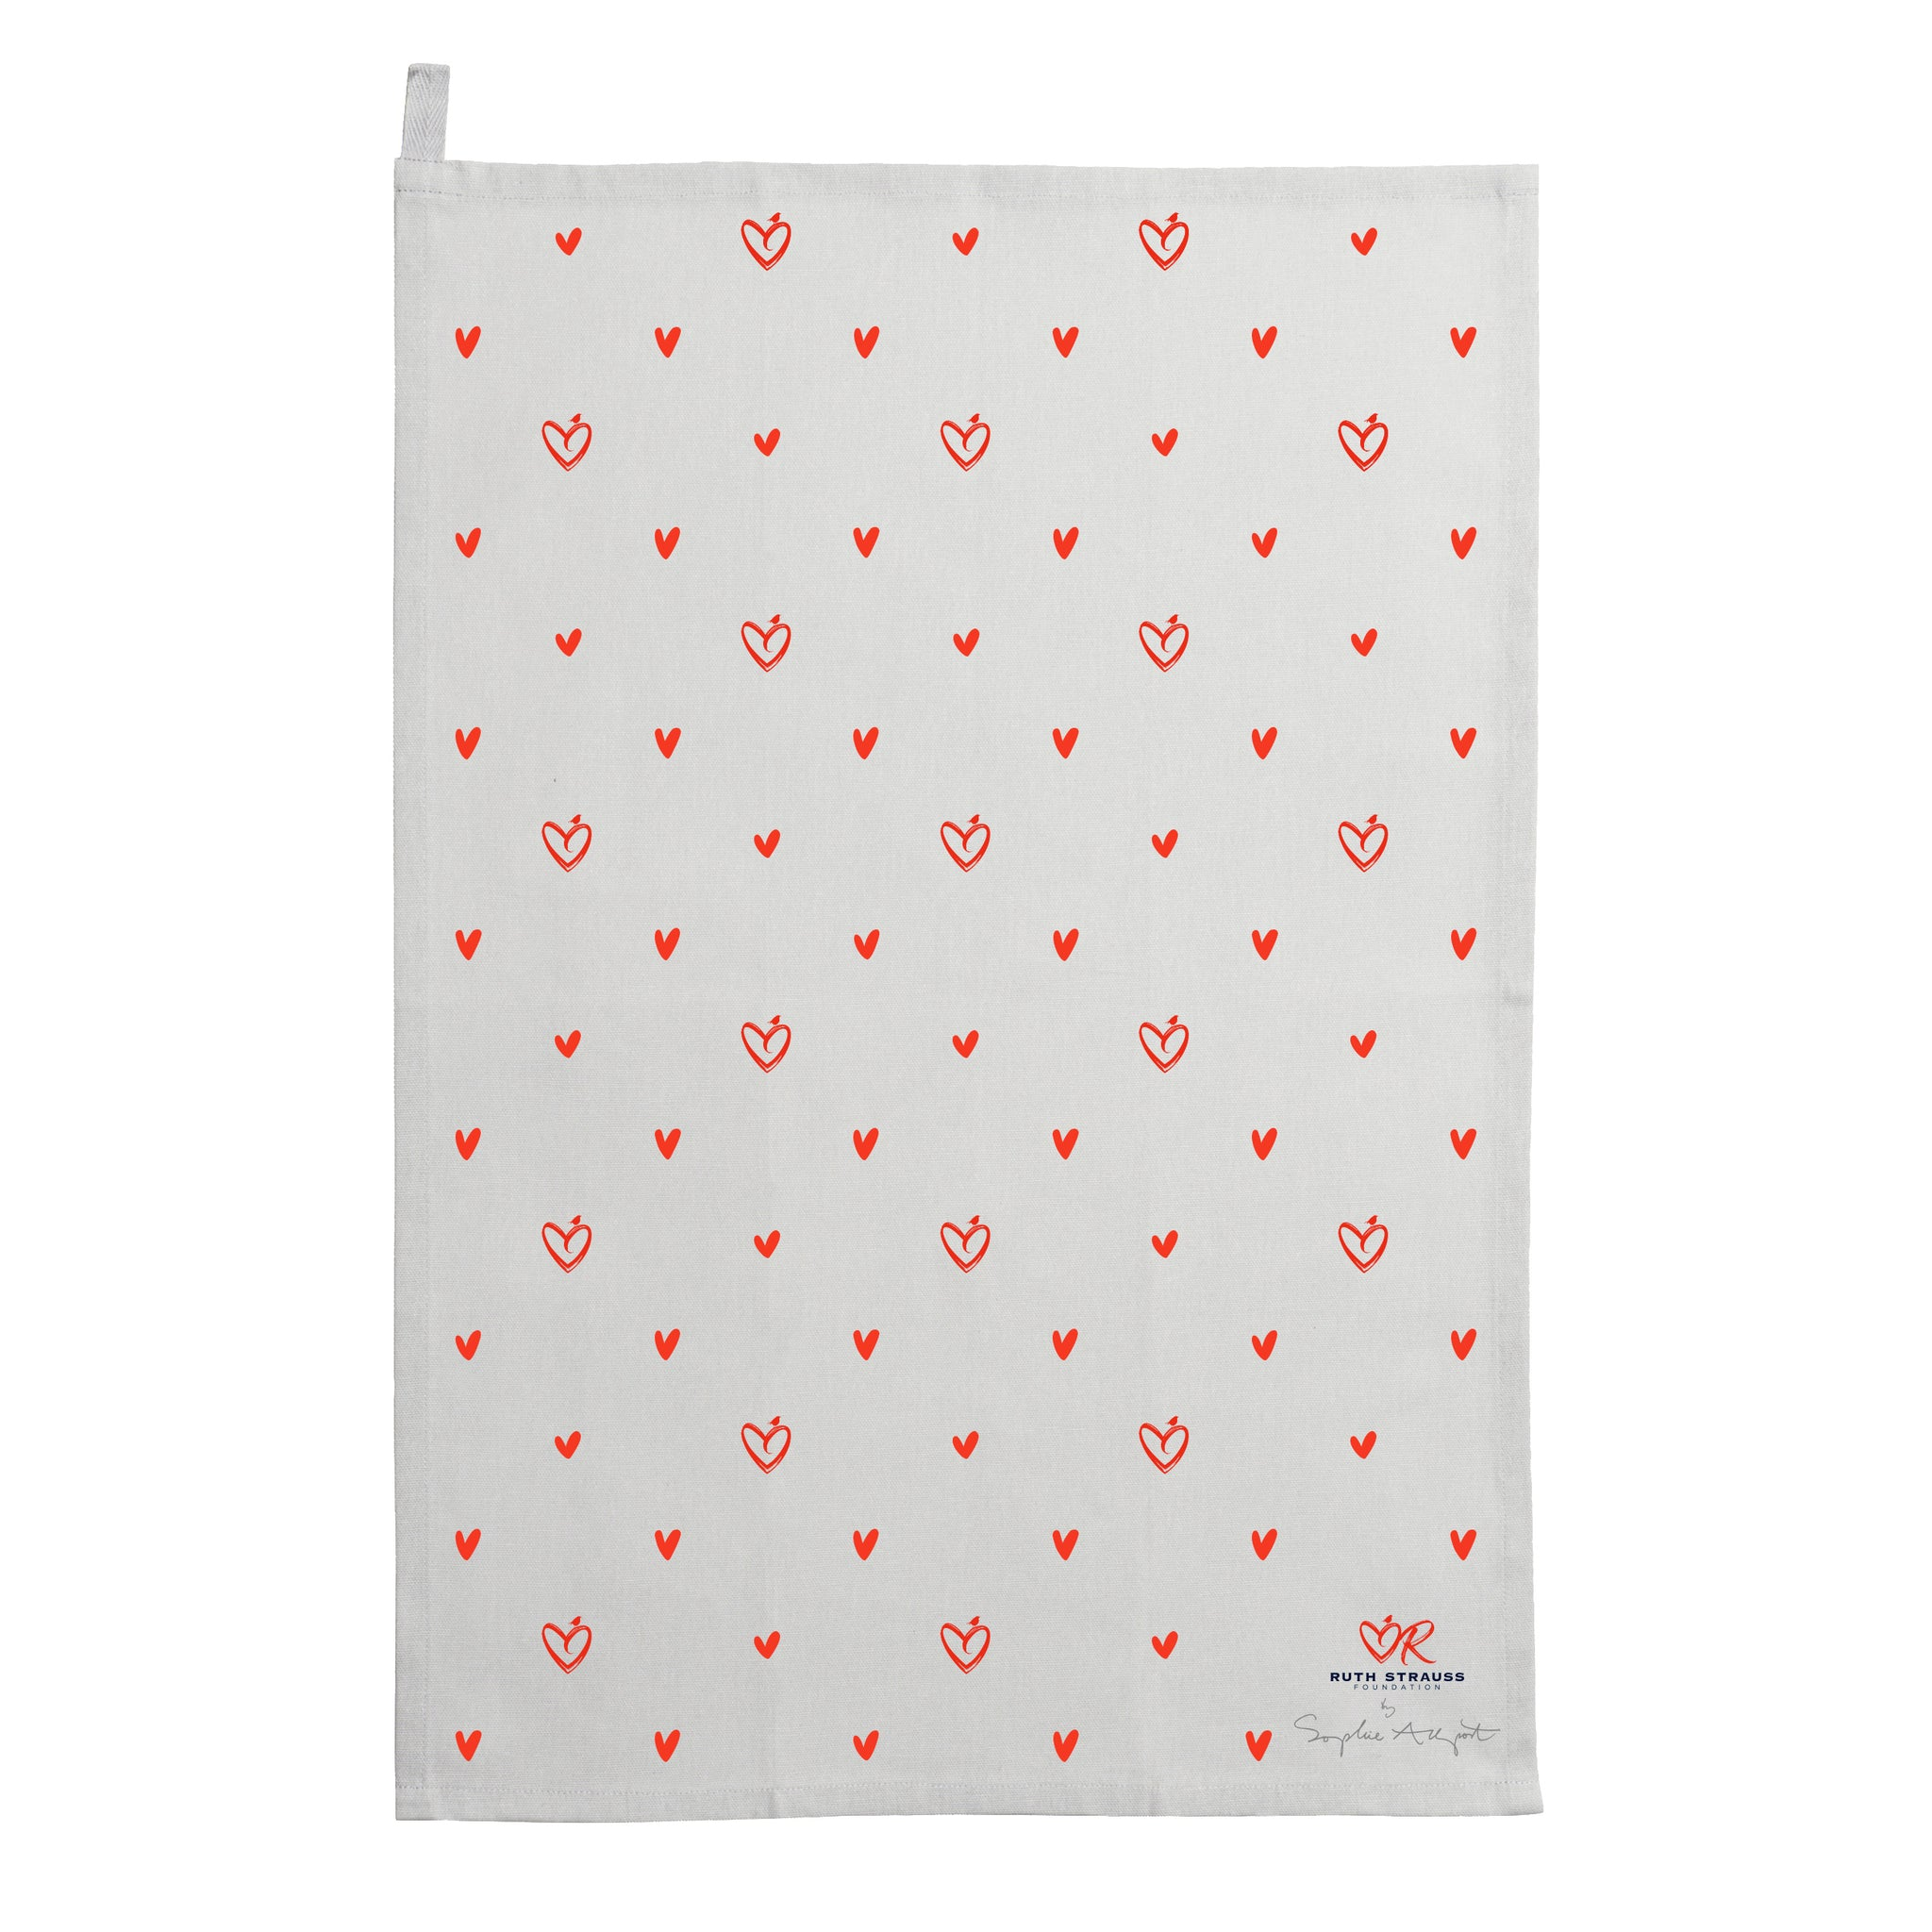 The Ruth Strauss Foundation Tea Towel